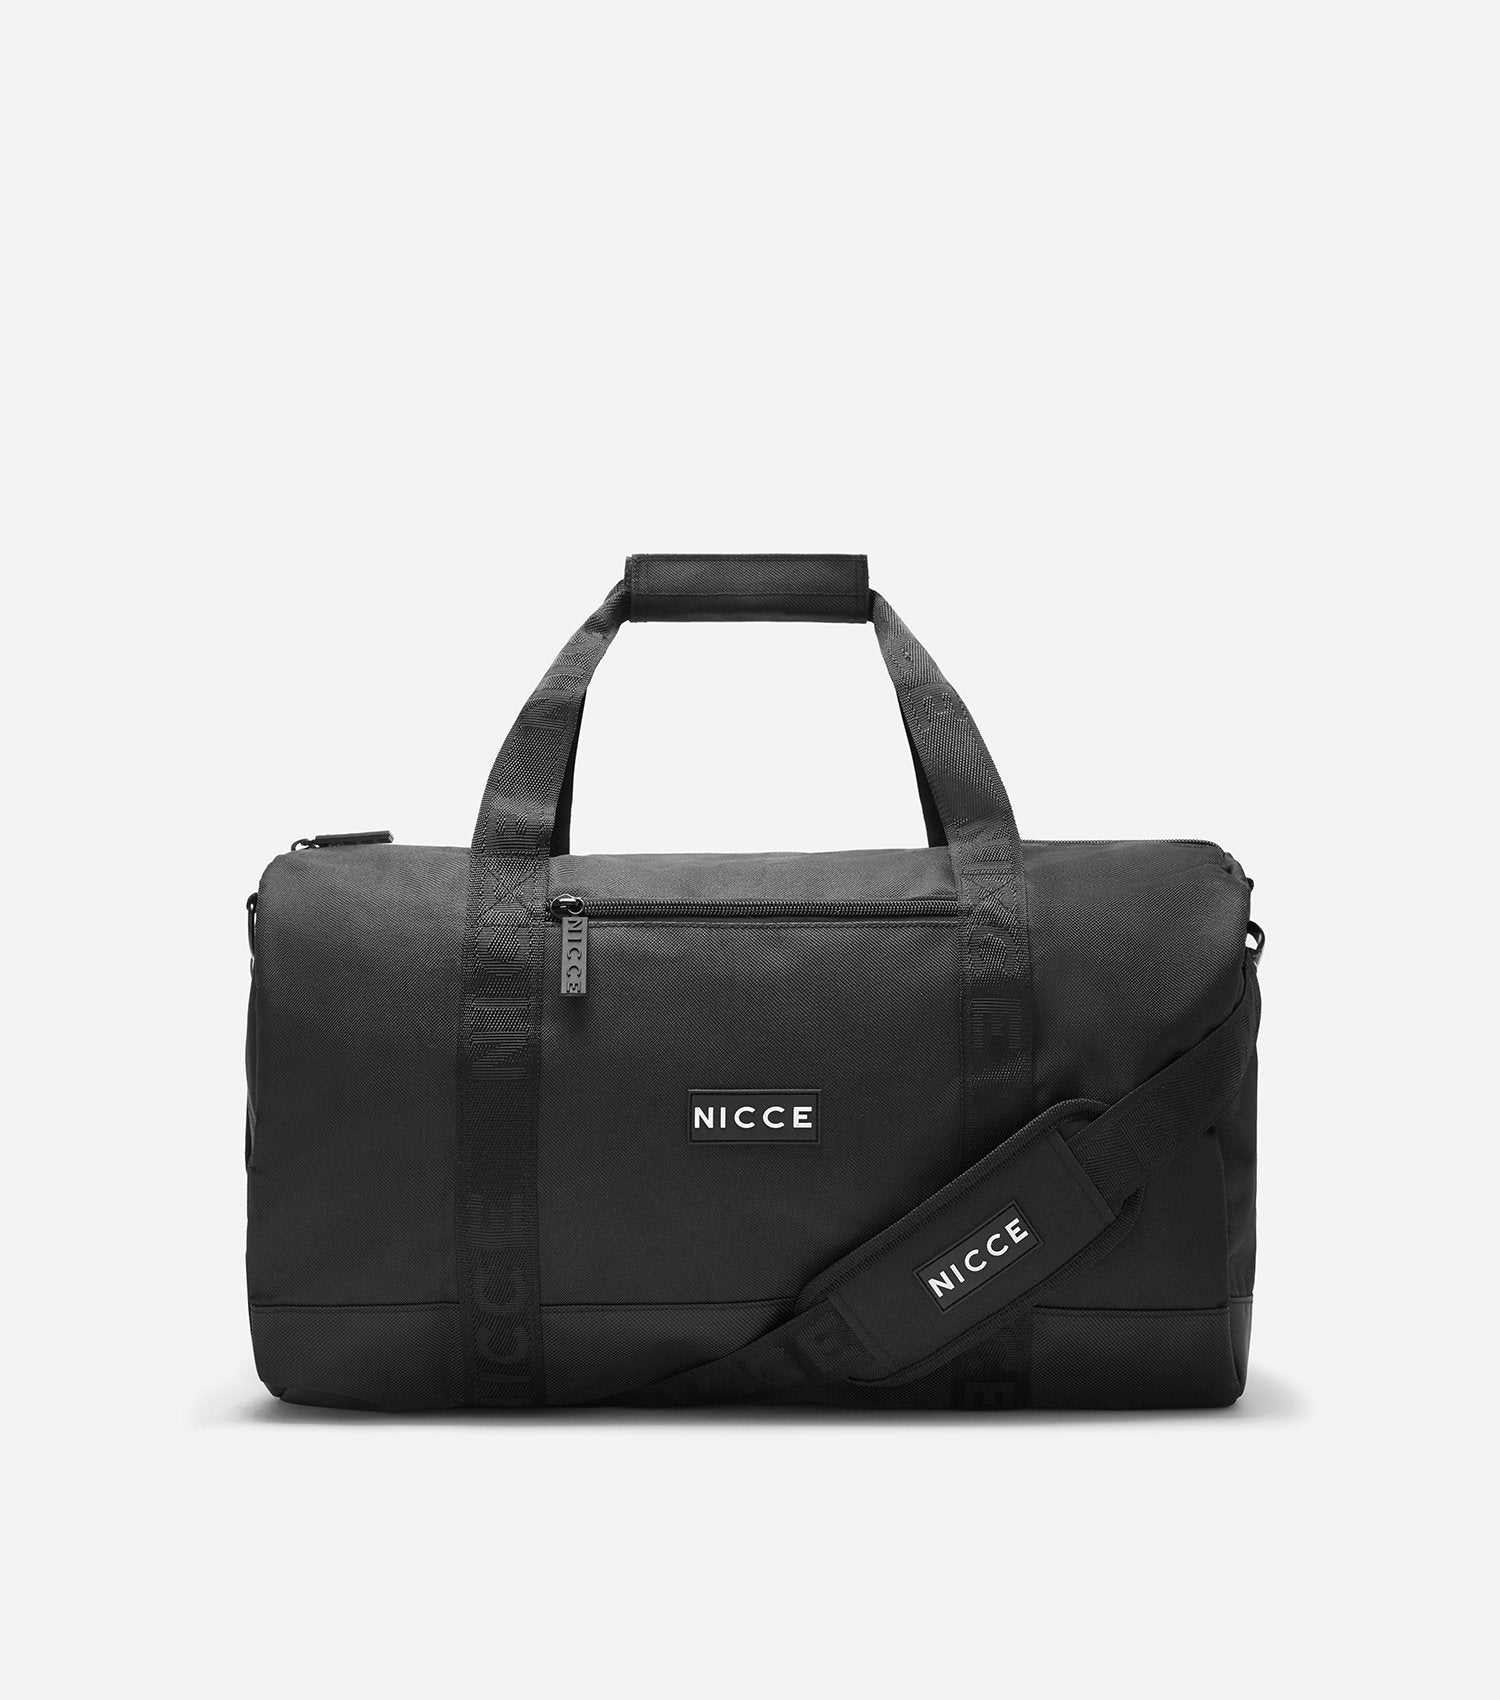 Black barrel bag featuring a front zipped pocket, NICCE badge logo, repeated logo lining, grab handle and detachable shoulder straps. Great for the weekend trips or the gym.